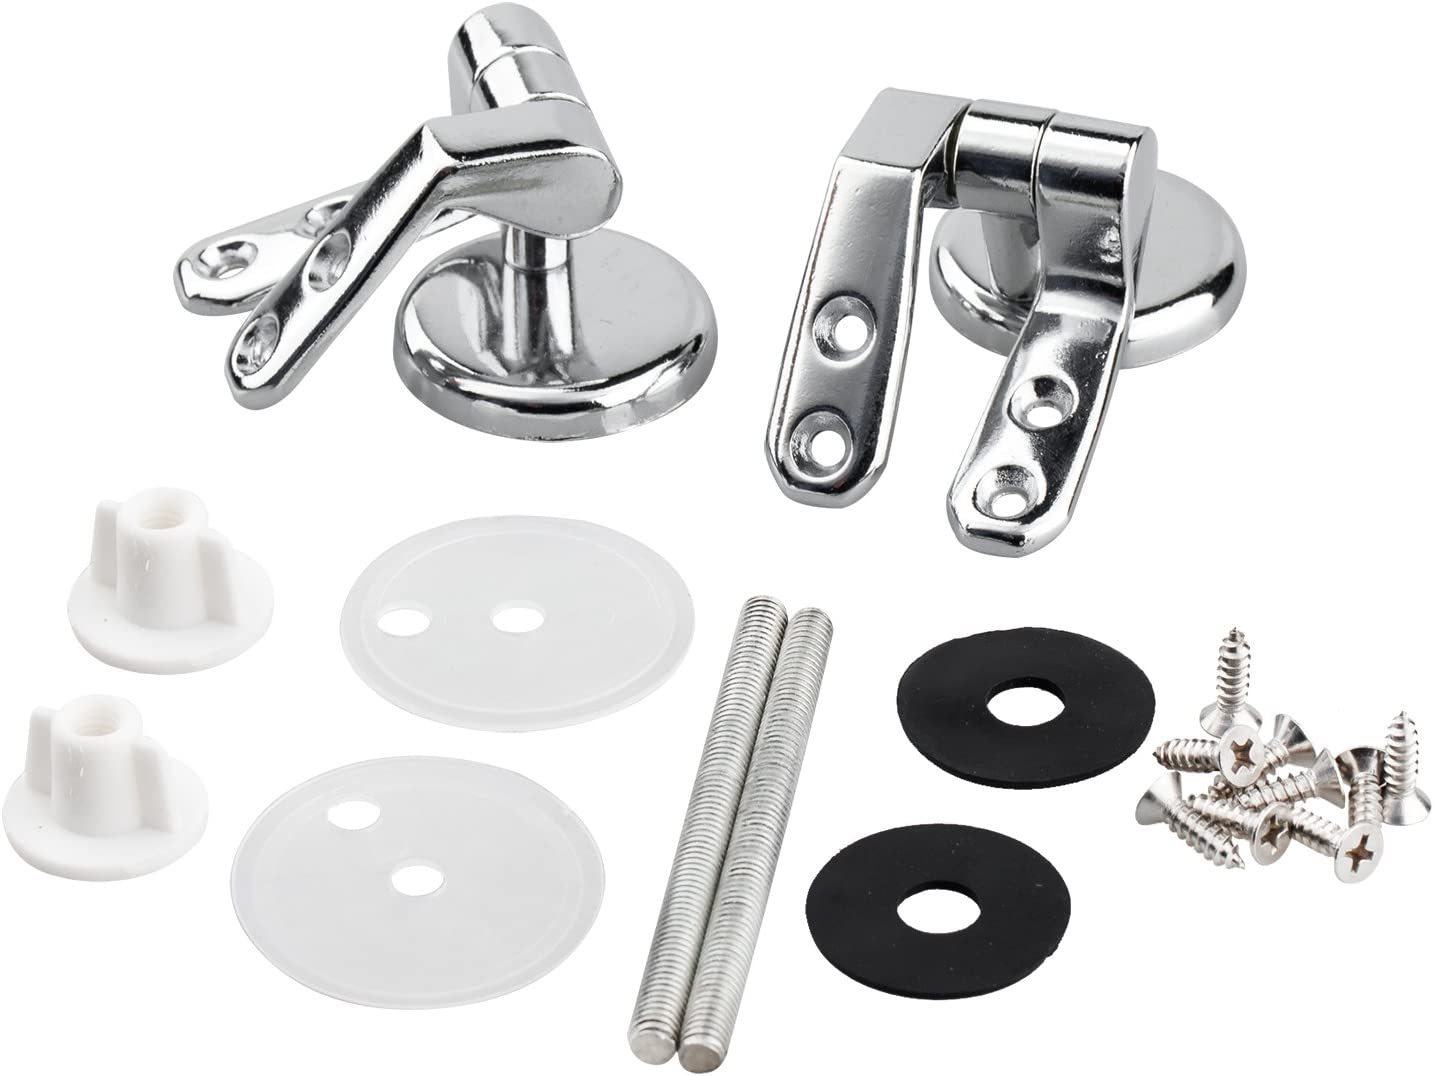 TRIXES Toilet Seat Hinges Pair of Chrome Finished Replacement Hinges For Wood Toilet Seats Including Fittings